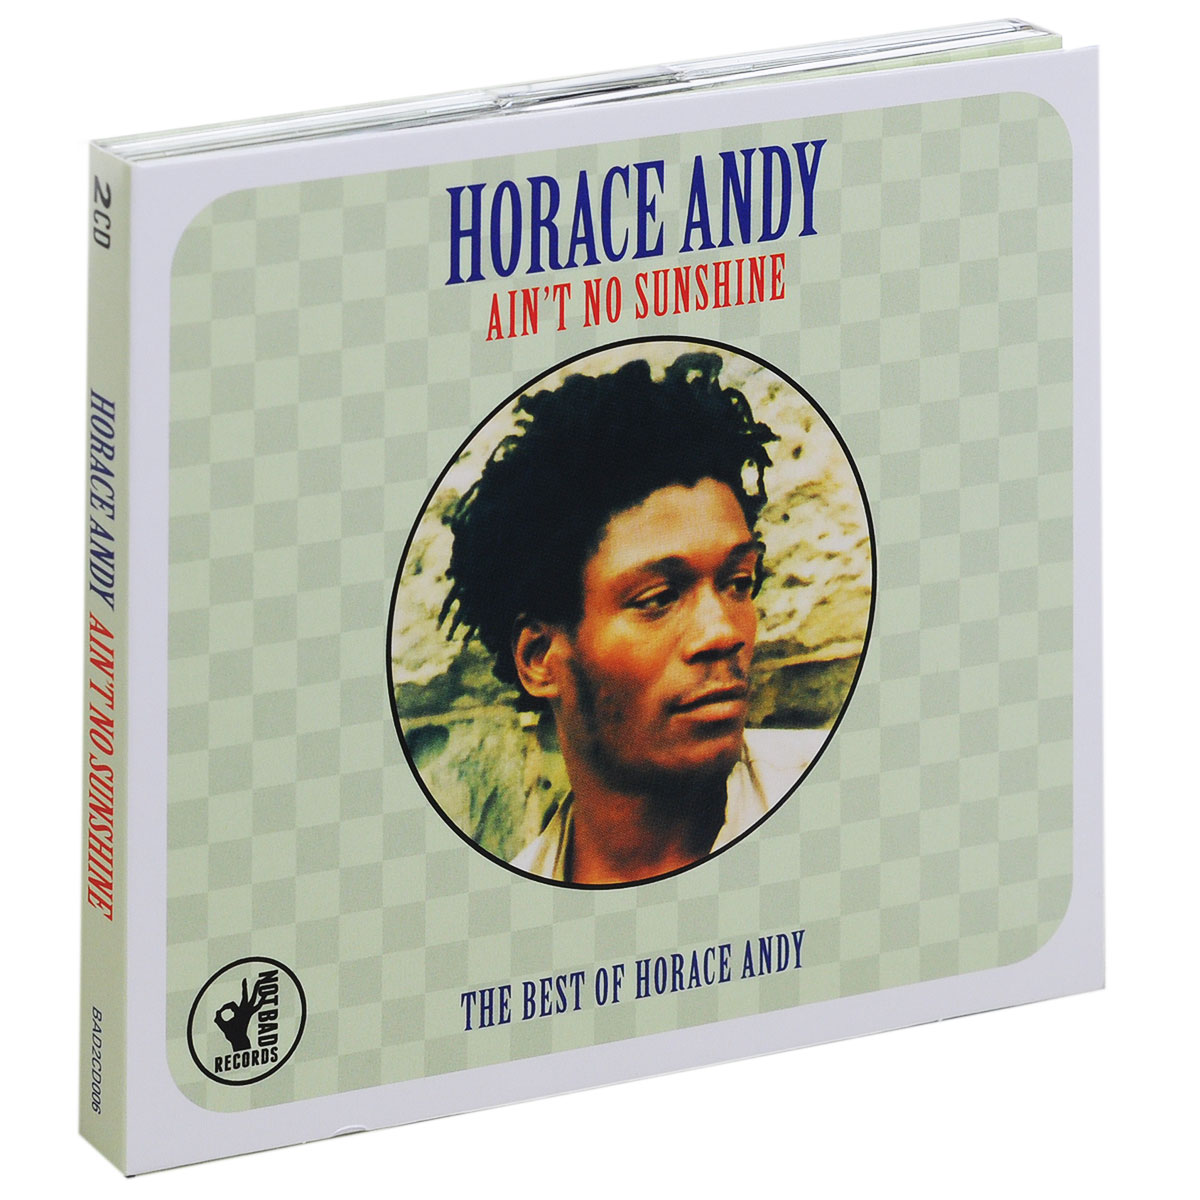 Хорас Энди Horace Andy. Ain't No Sunshine. The Best Of Horace Andy (2 CD) andrew john andy partridge andy partridge powers